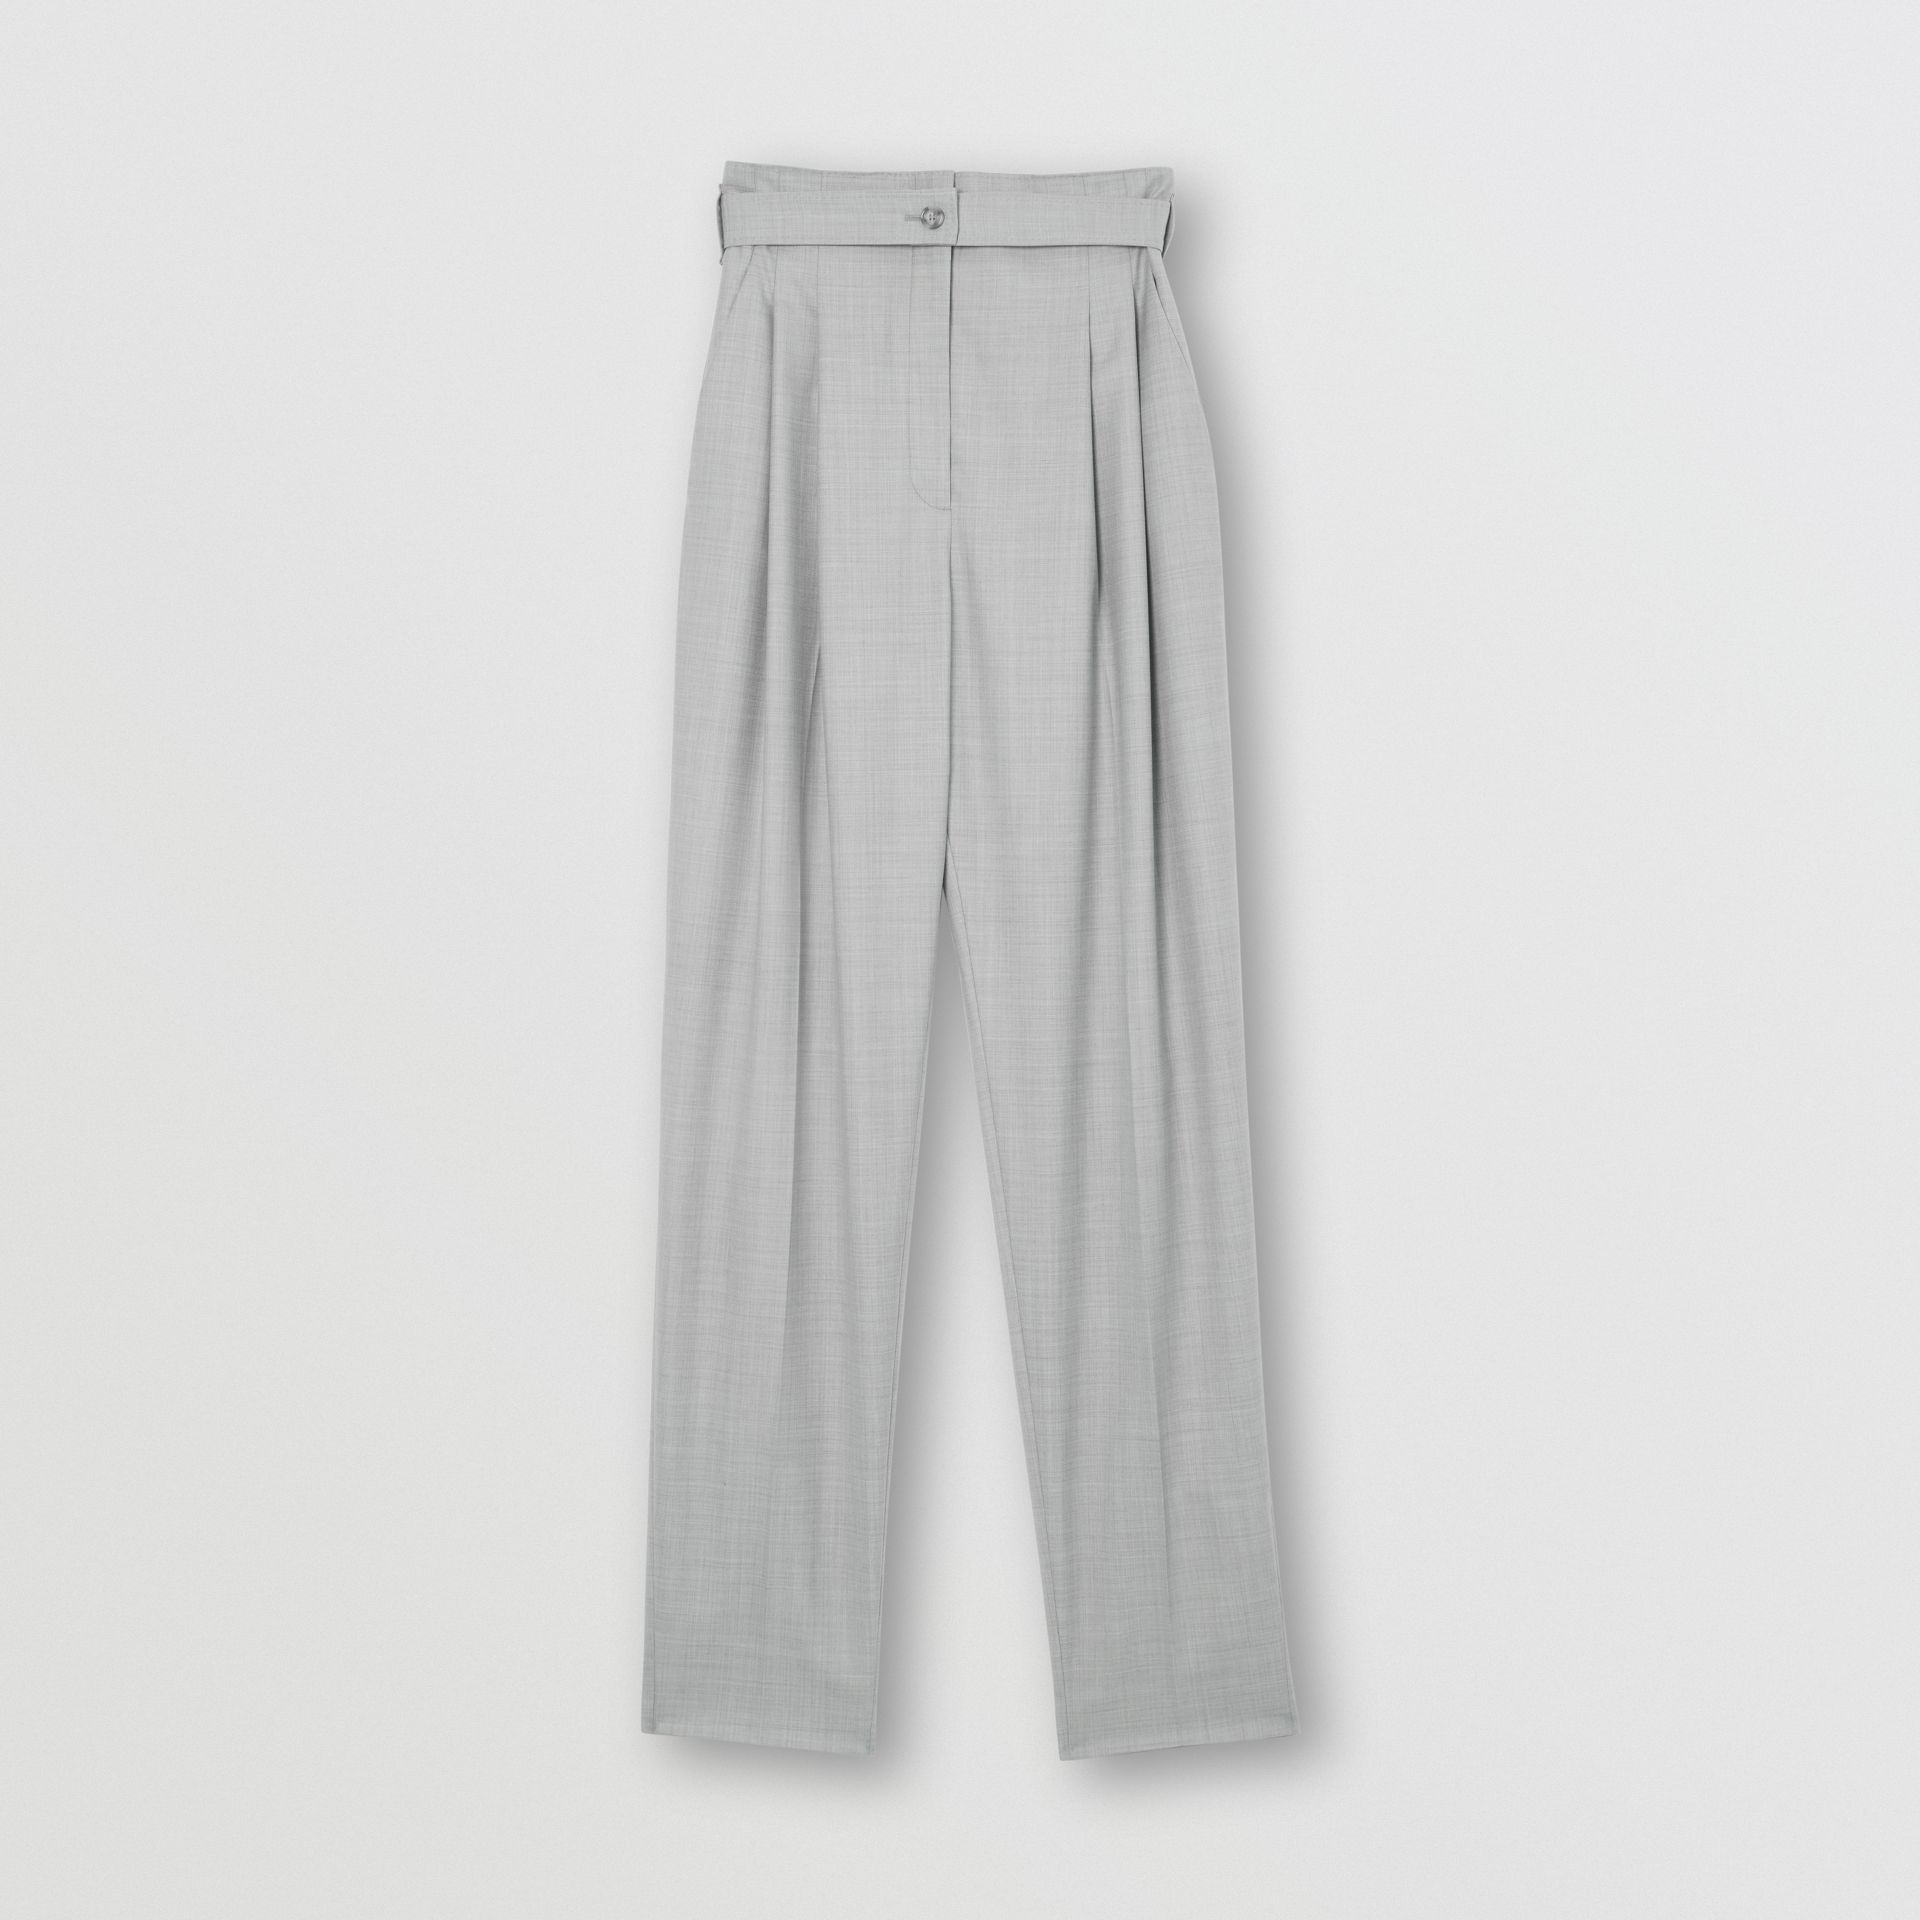 Cut-out Detail Wool Jersey Tailored Trousers in Cloud Grey - Women | Burberry Canada - gallery image 3